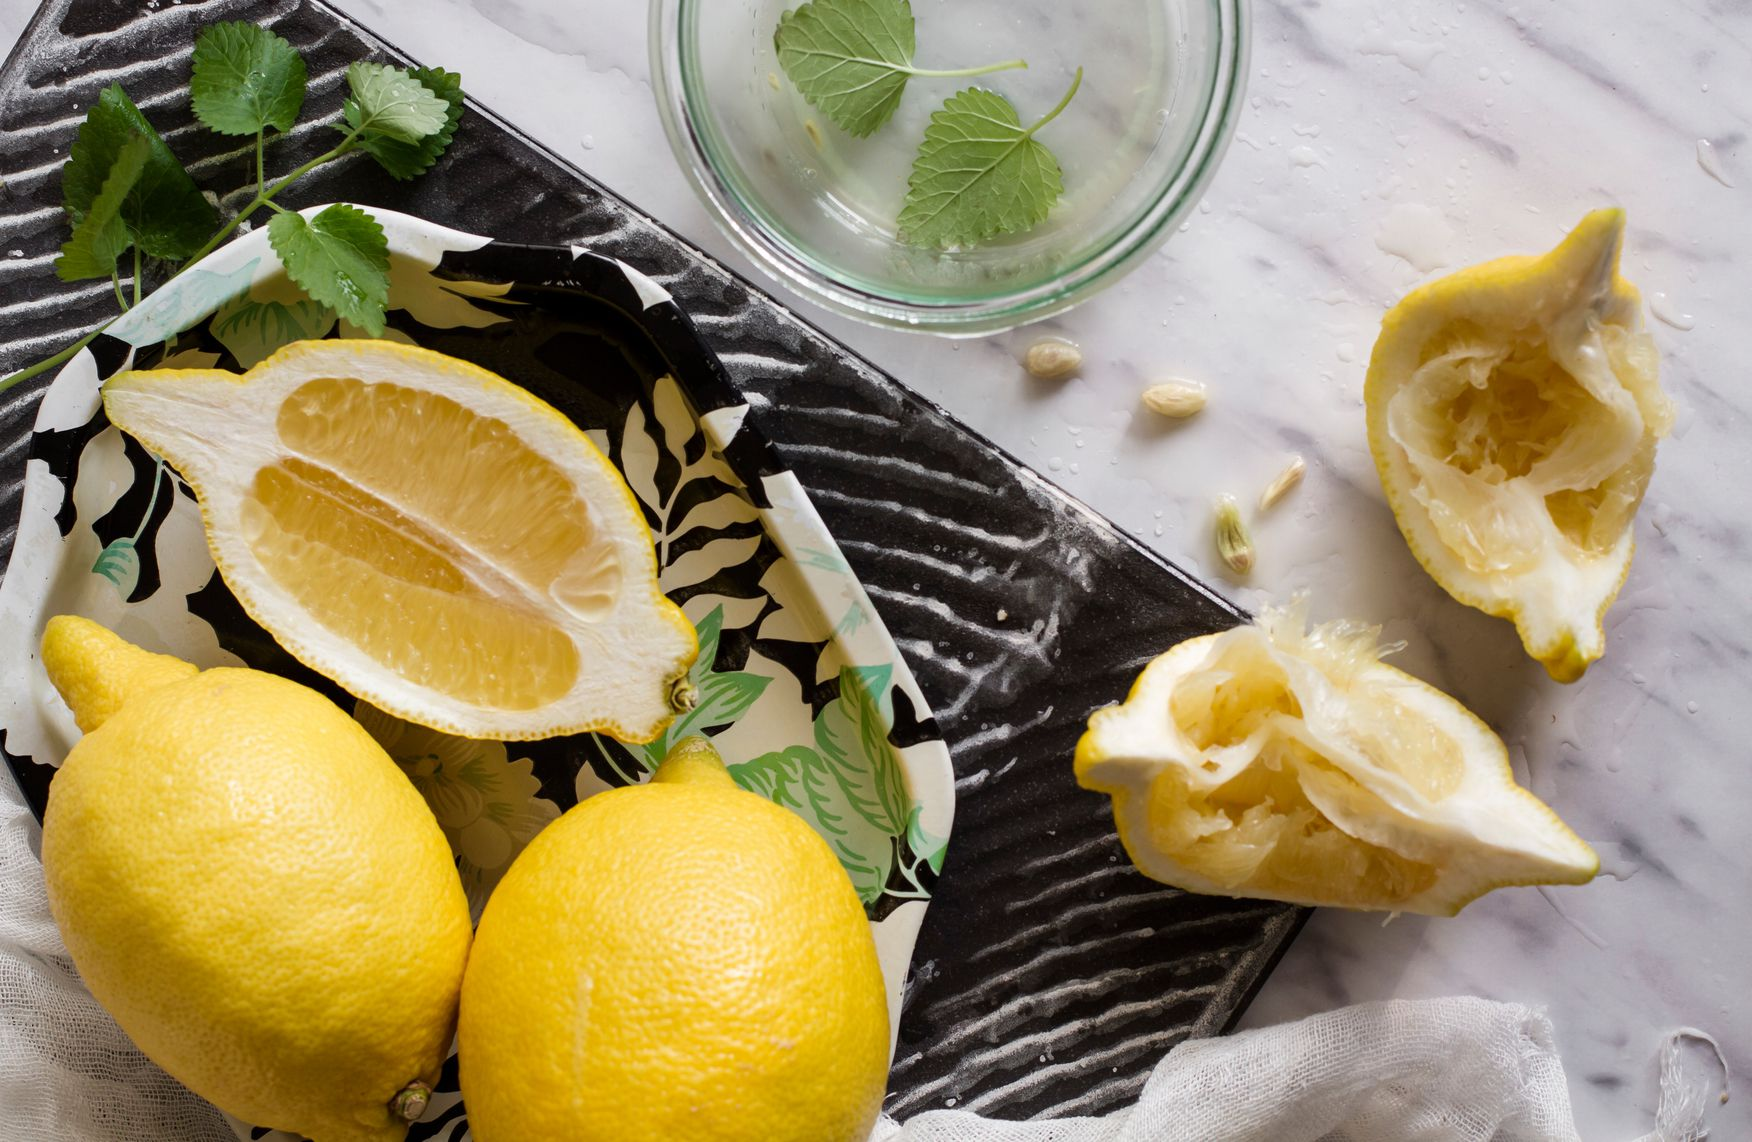 Diy Citrus And Herb Sprays For A Cleaner Greener Home